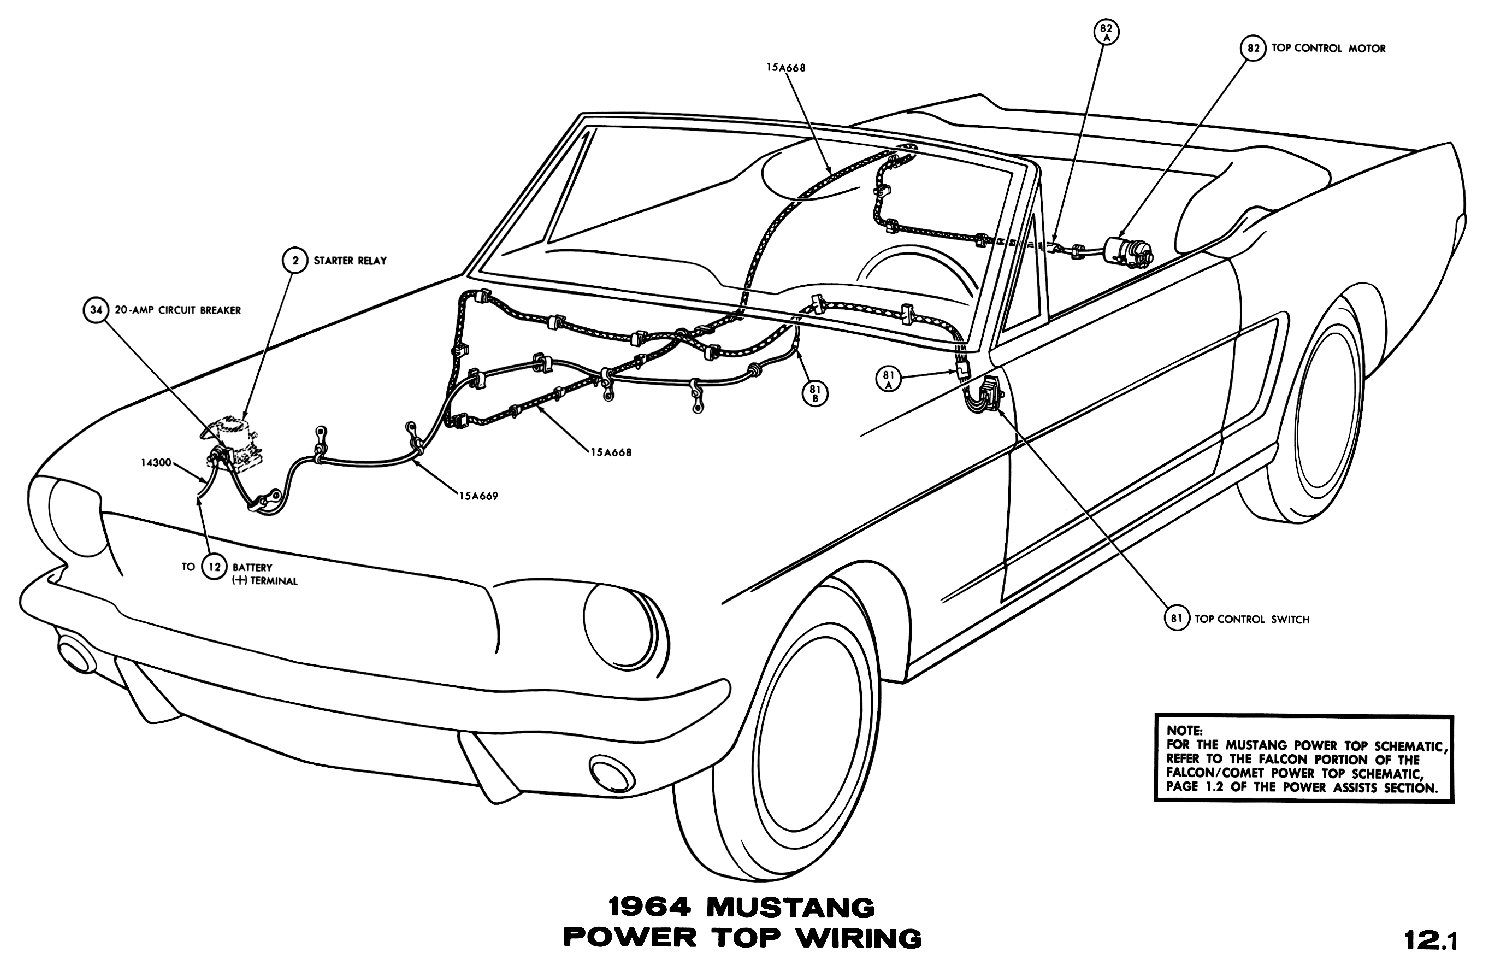 1964 Mustang Wiring Diagrams Average Joe Restoration Panel Power Top Pictorial Or Schematic